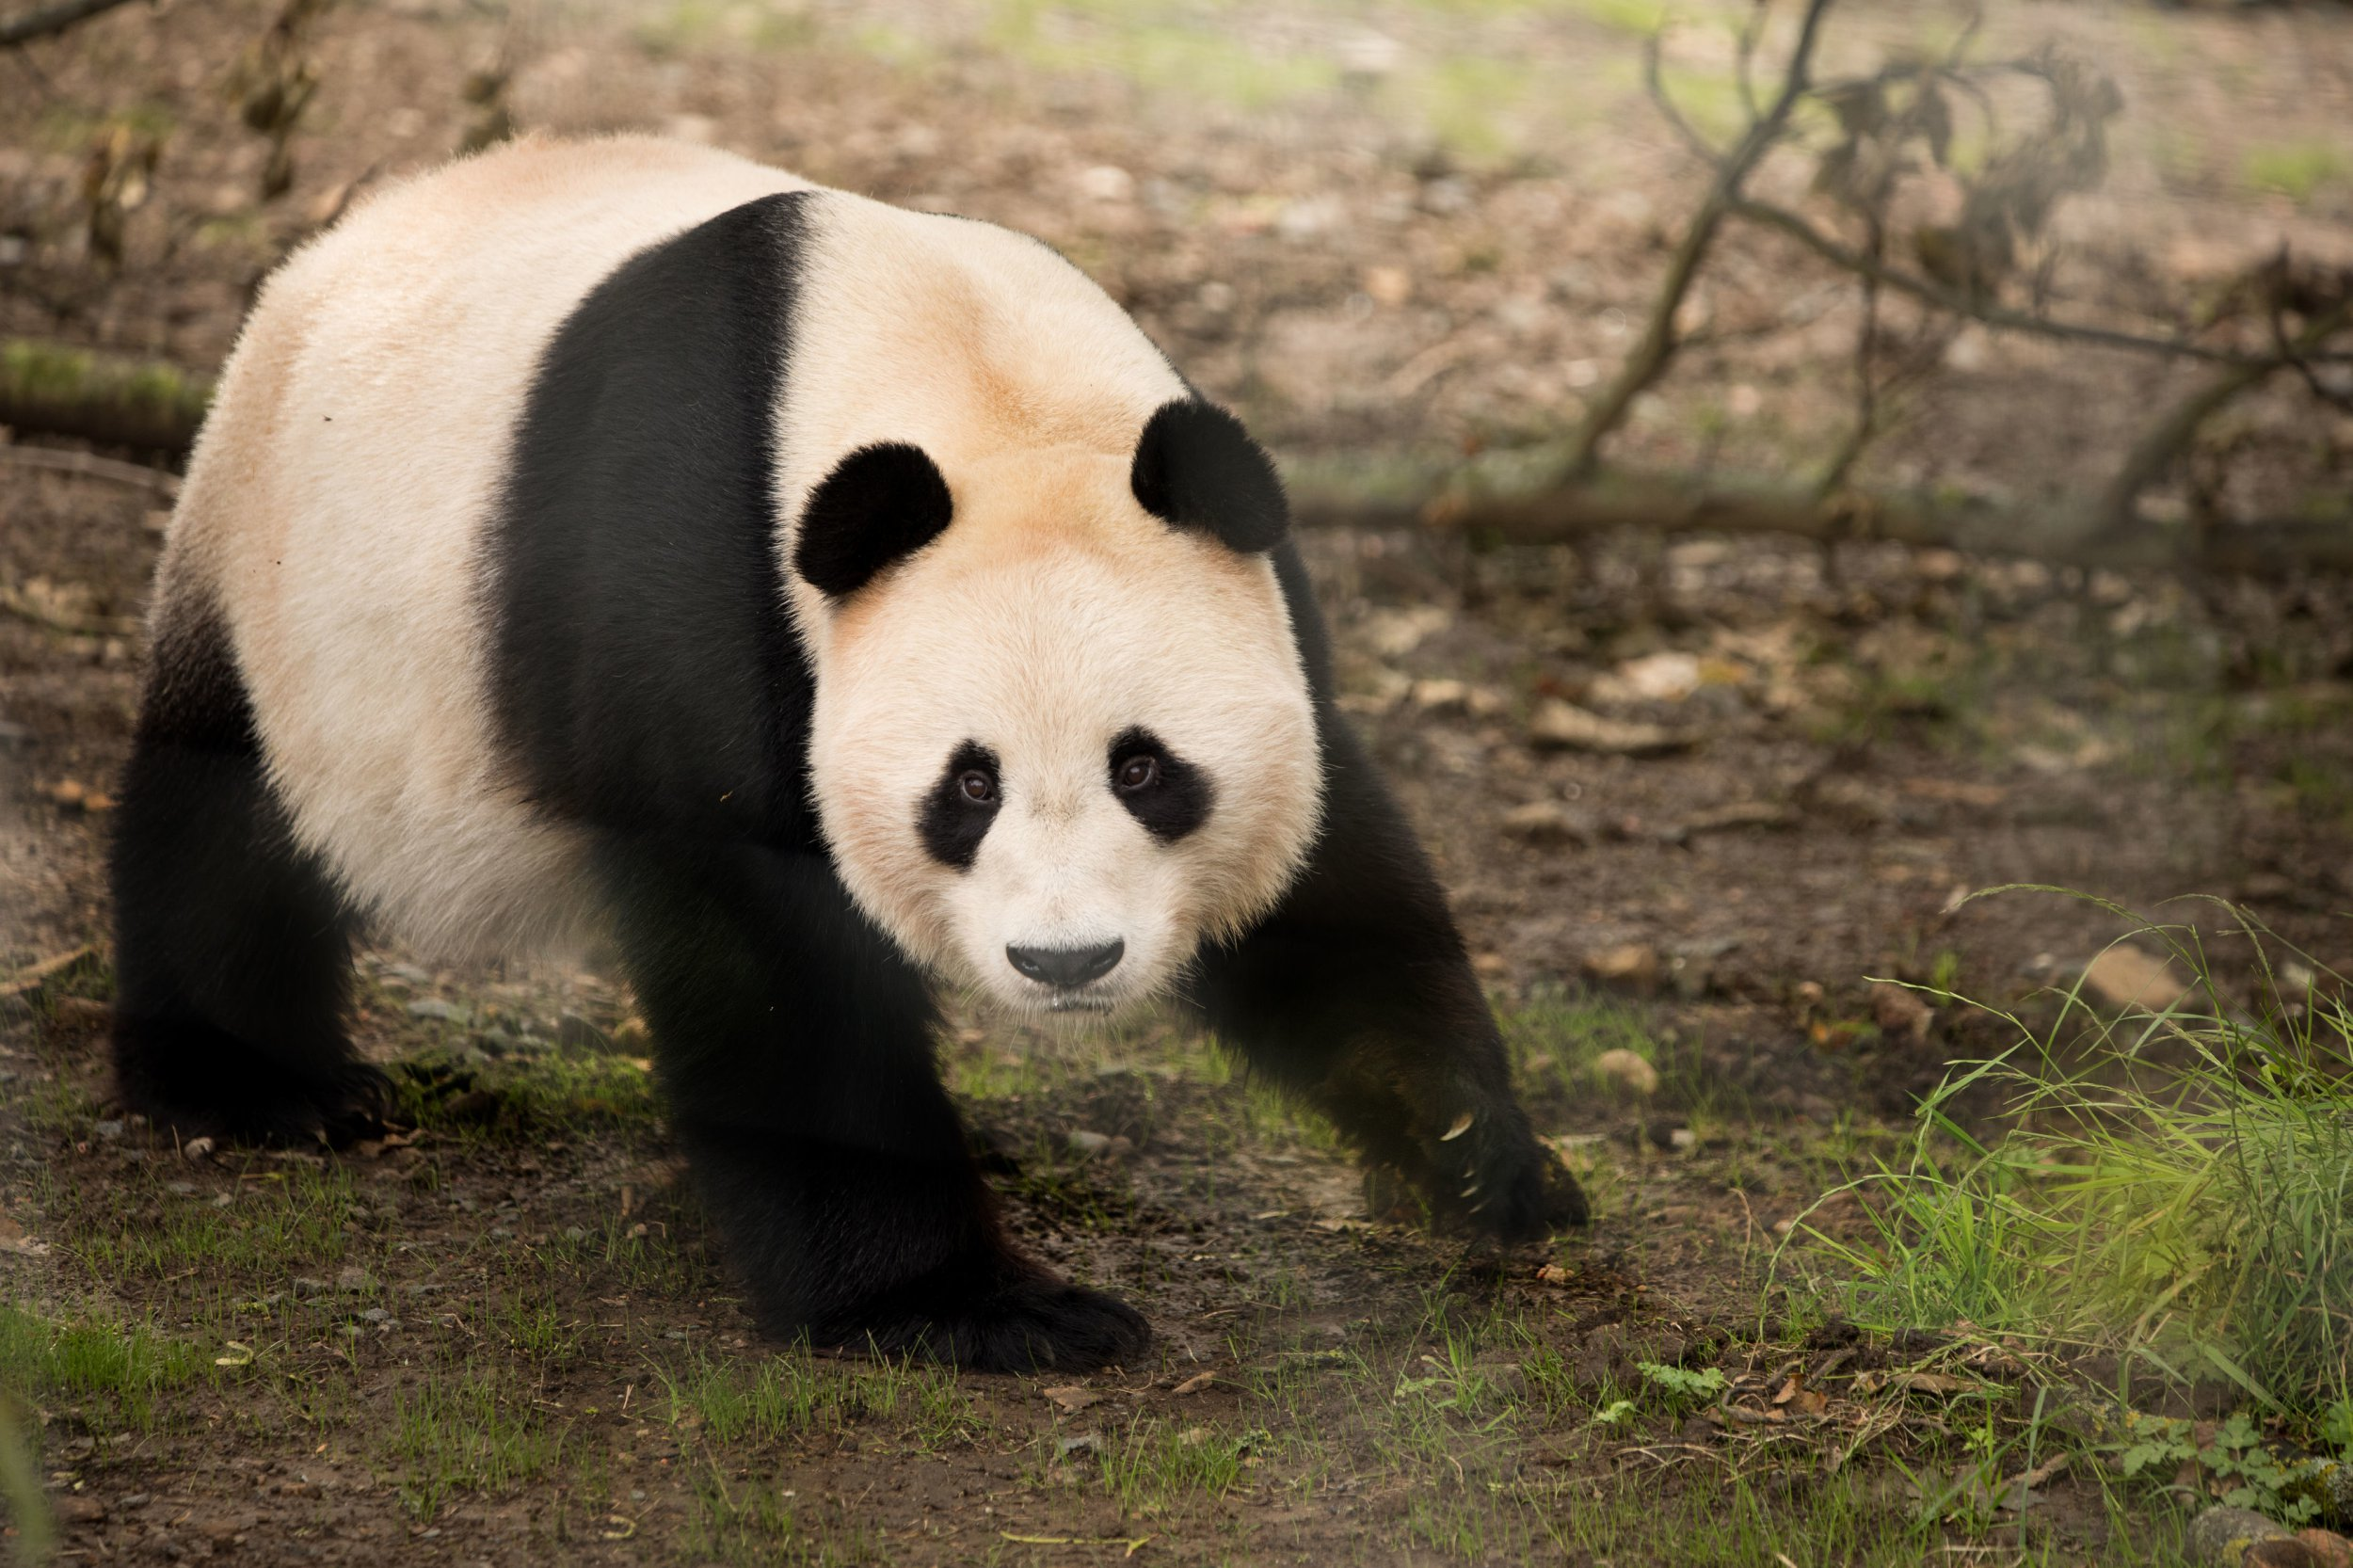 first pictures of yang guang the giant male panda enjoying new home at edinburgh zoo [ 2500 x 1666 Pixel ]